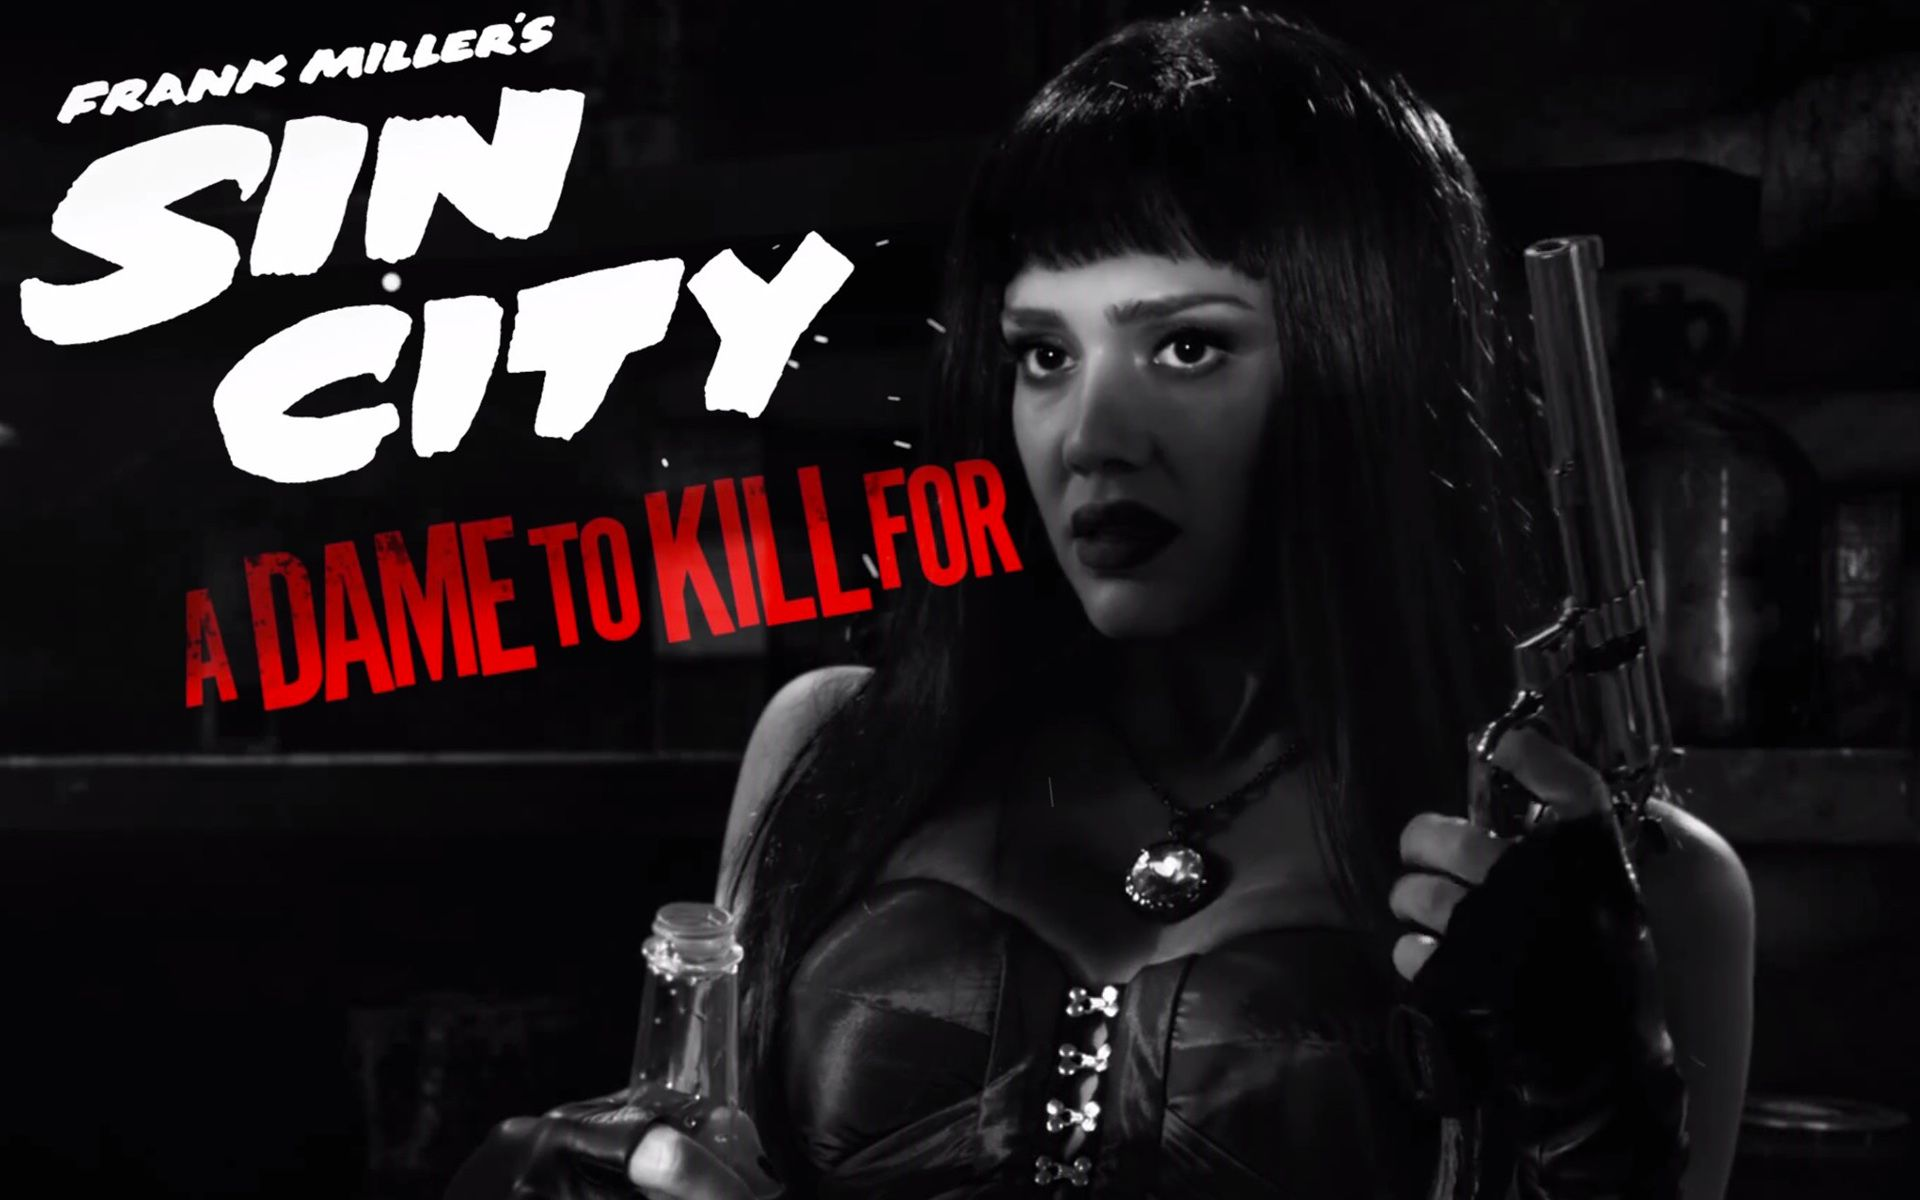 Jessica Alba In Sin City 2 Wallpapers Hd Wallpapers Sin City 2 Jessica Alba Sin City Sin City